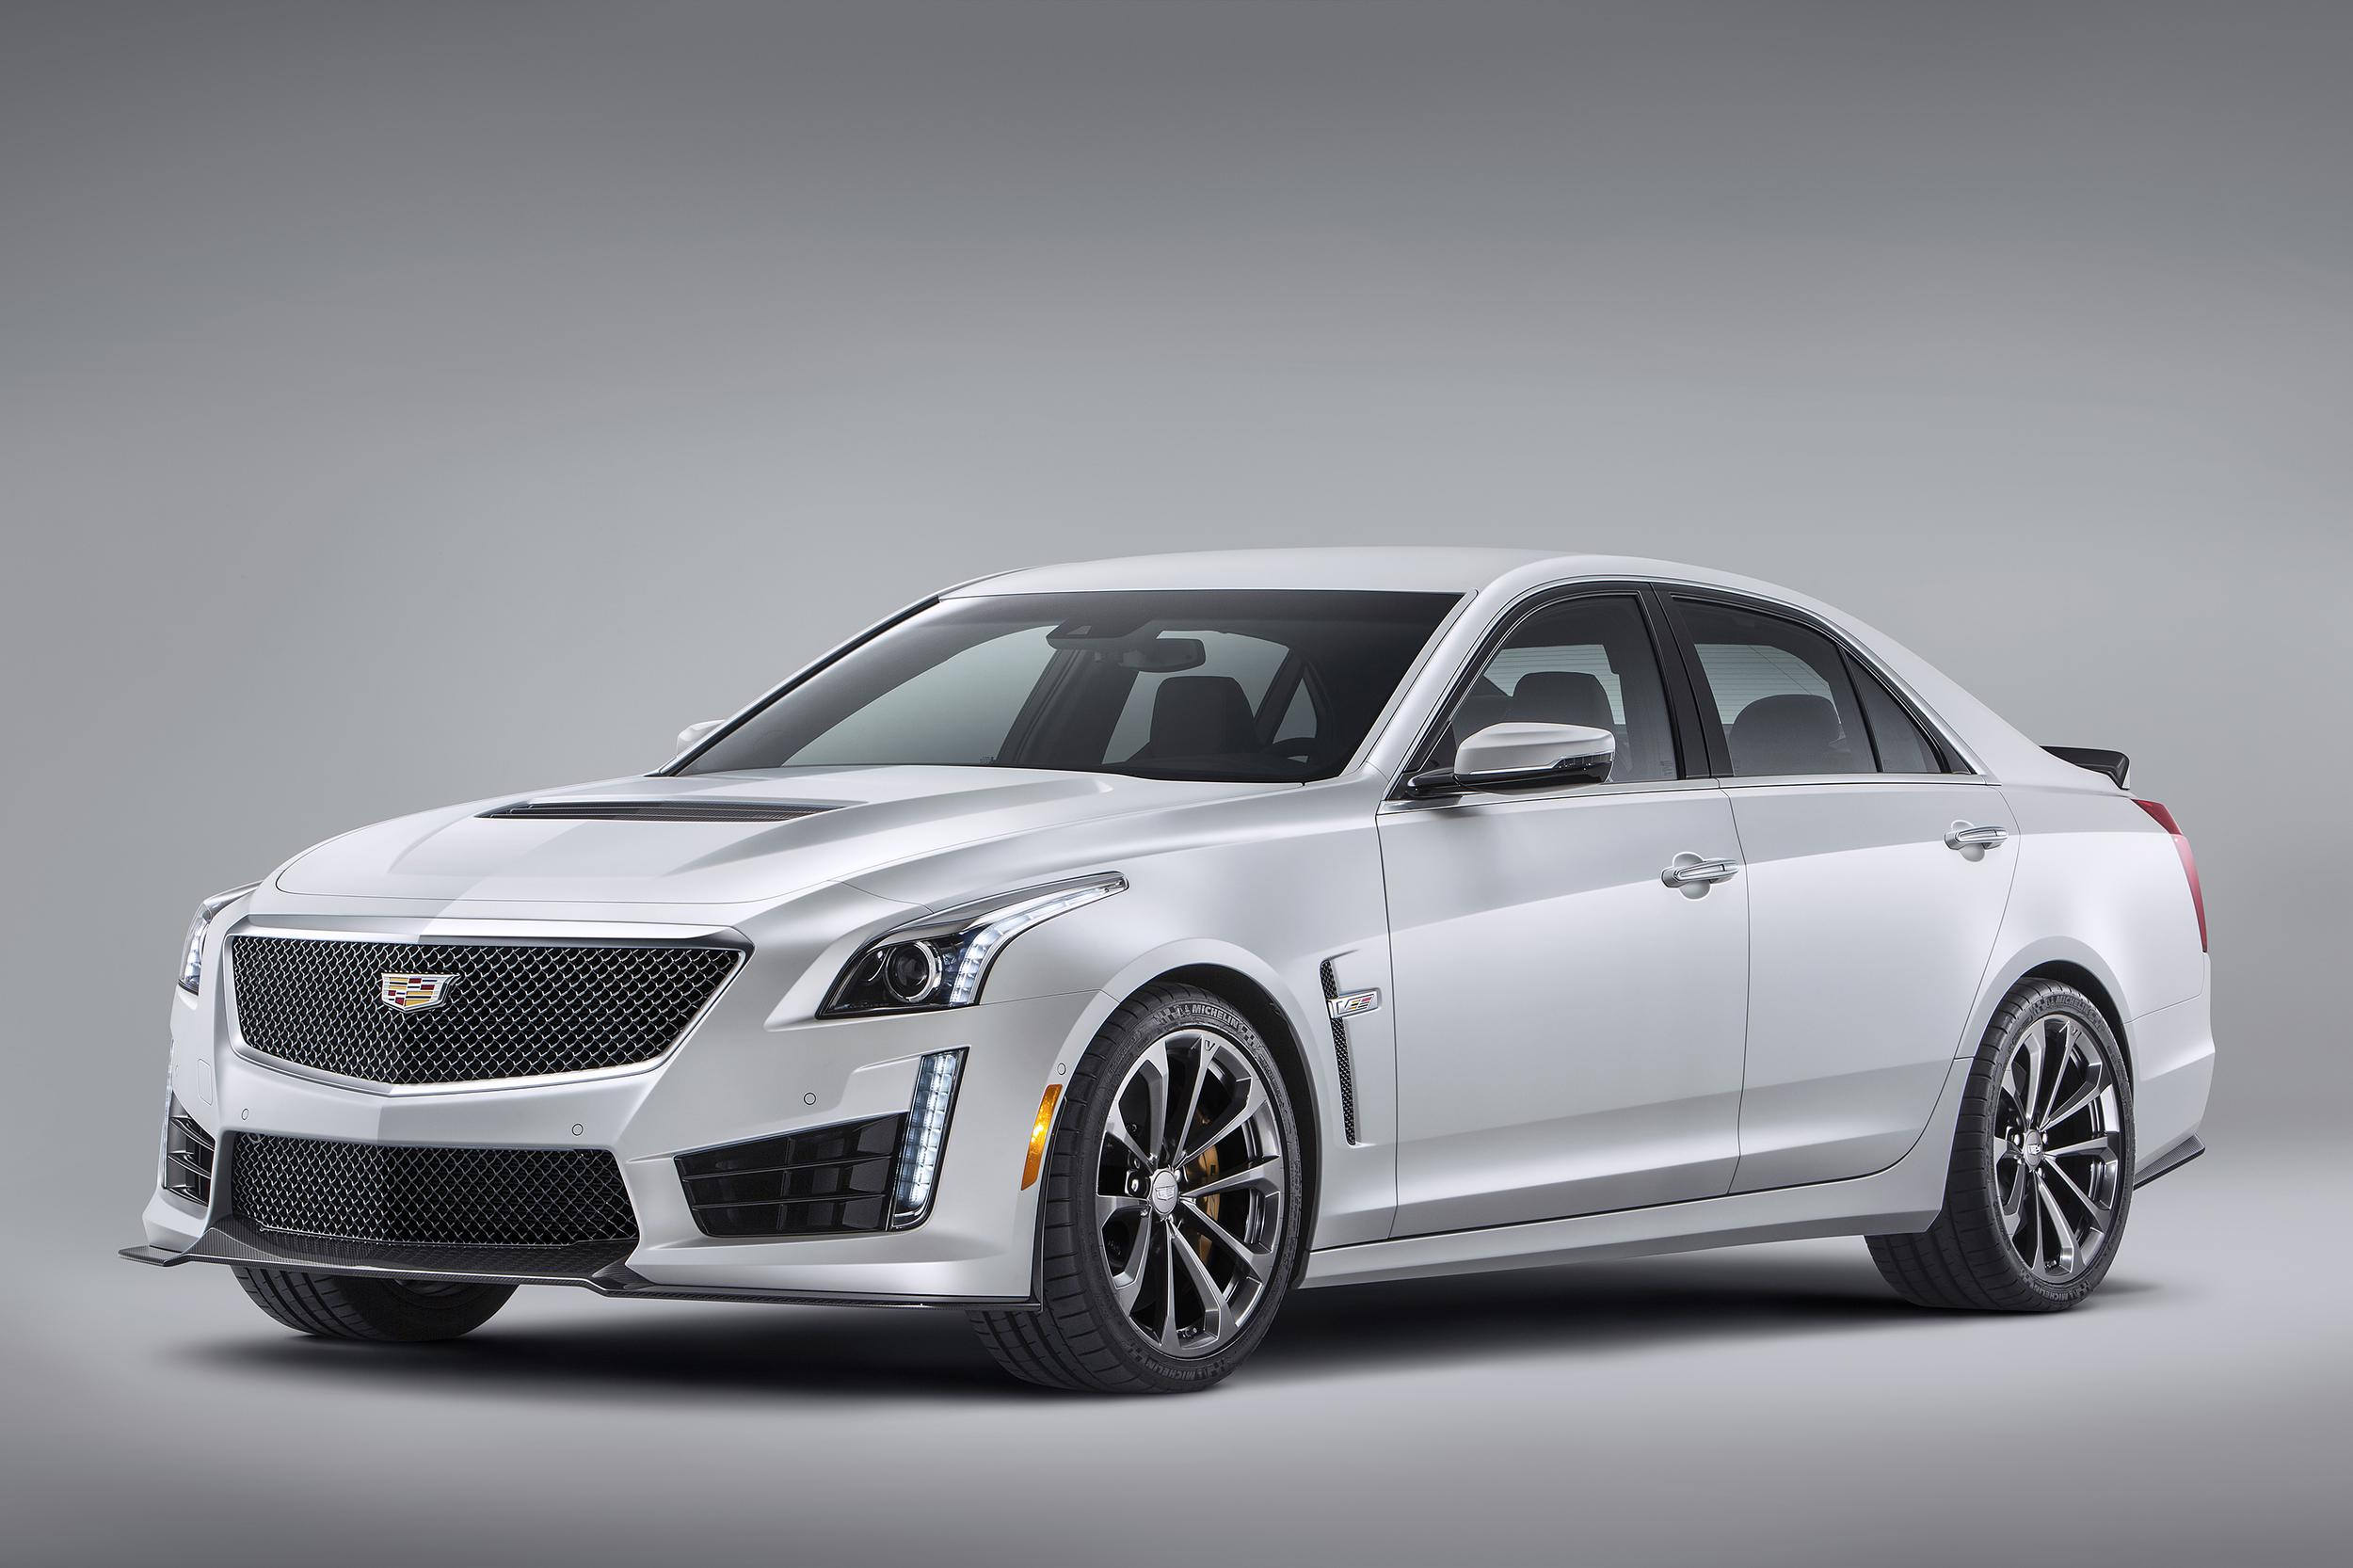 autonation revealed automotive cts cadillac blog v drive sedan